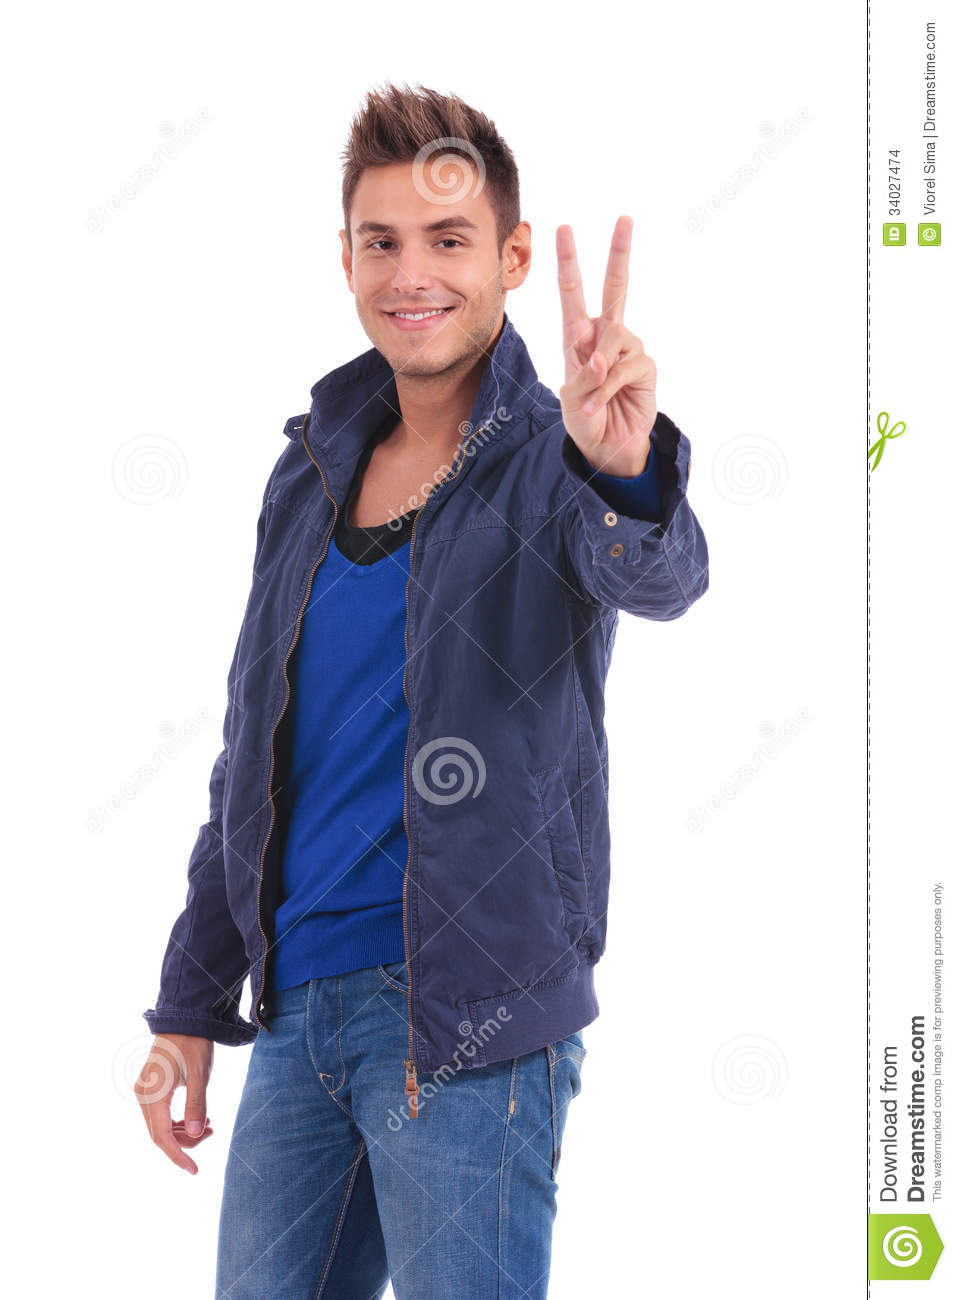 Casual man in a blue jacket is making the victory hand sign